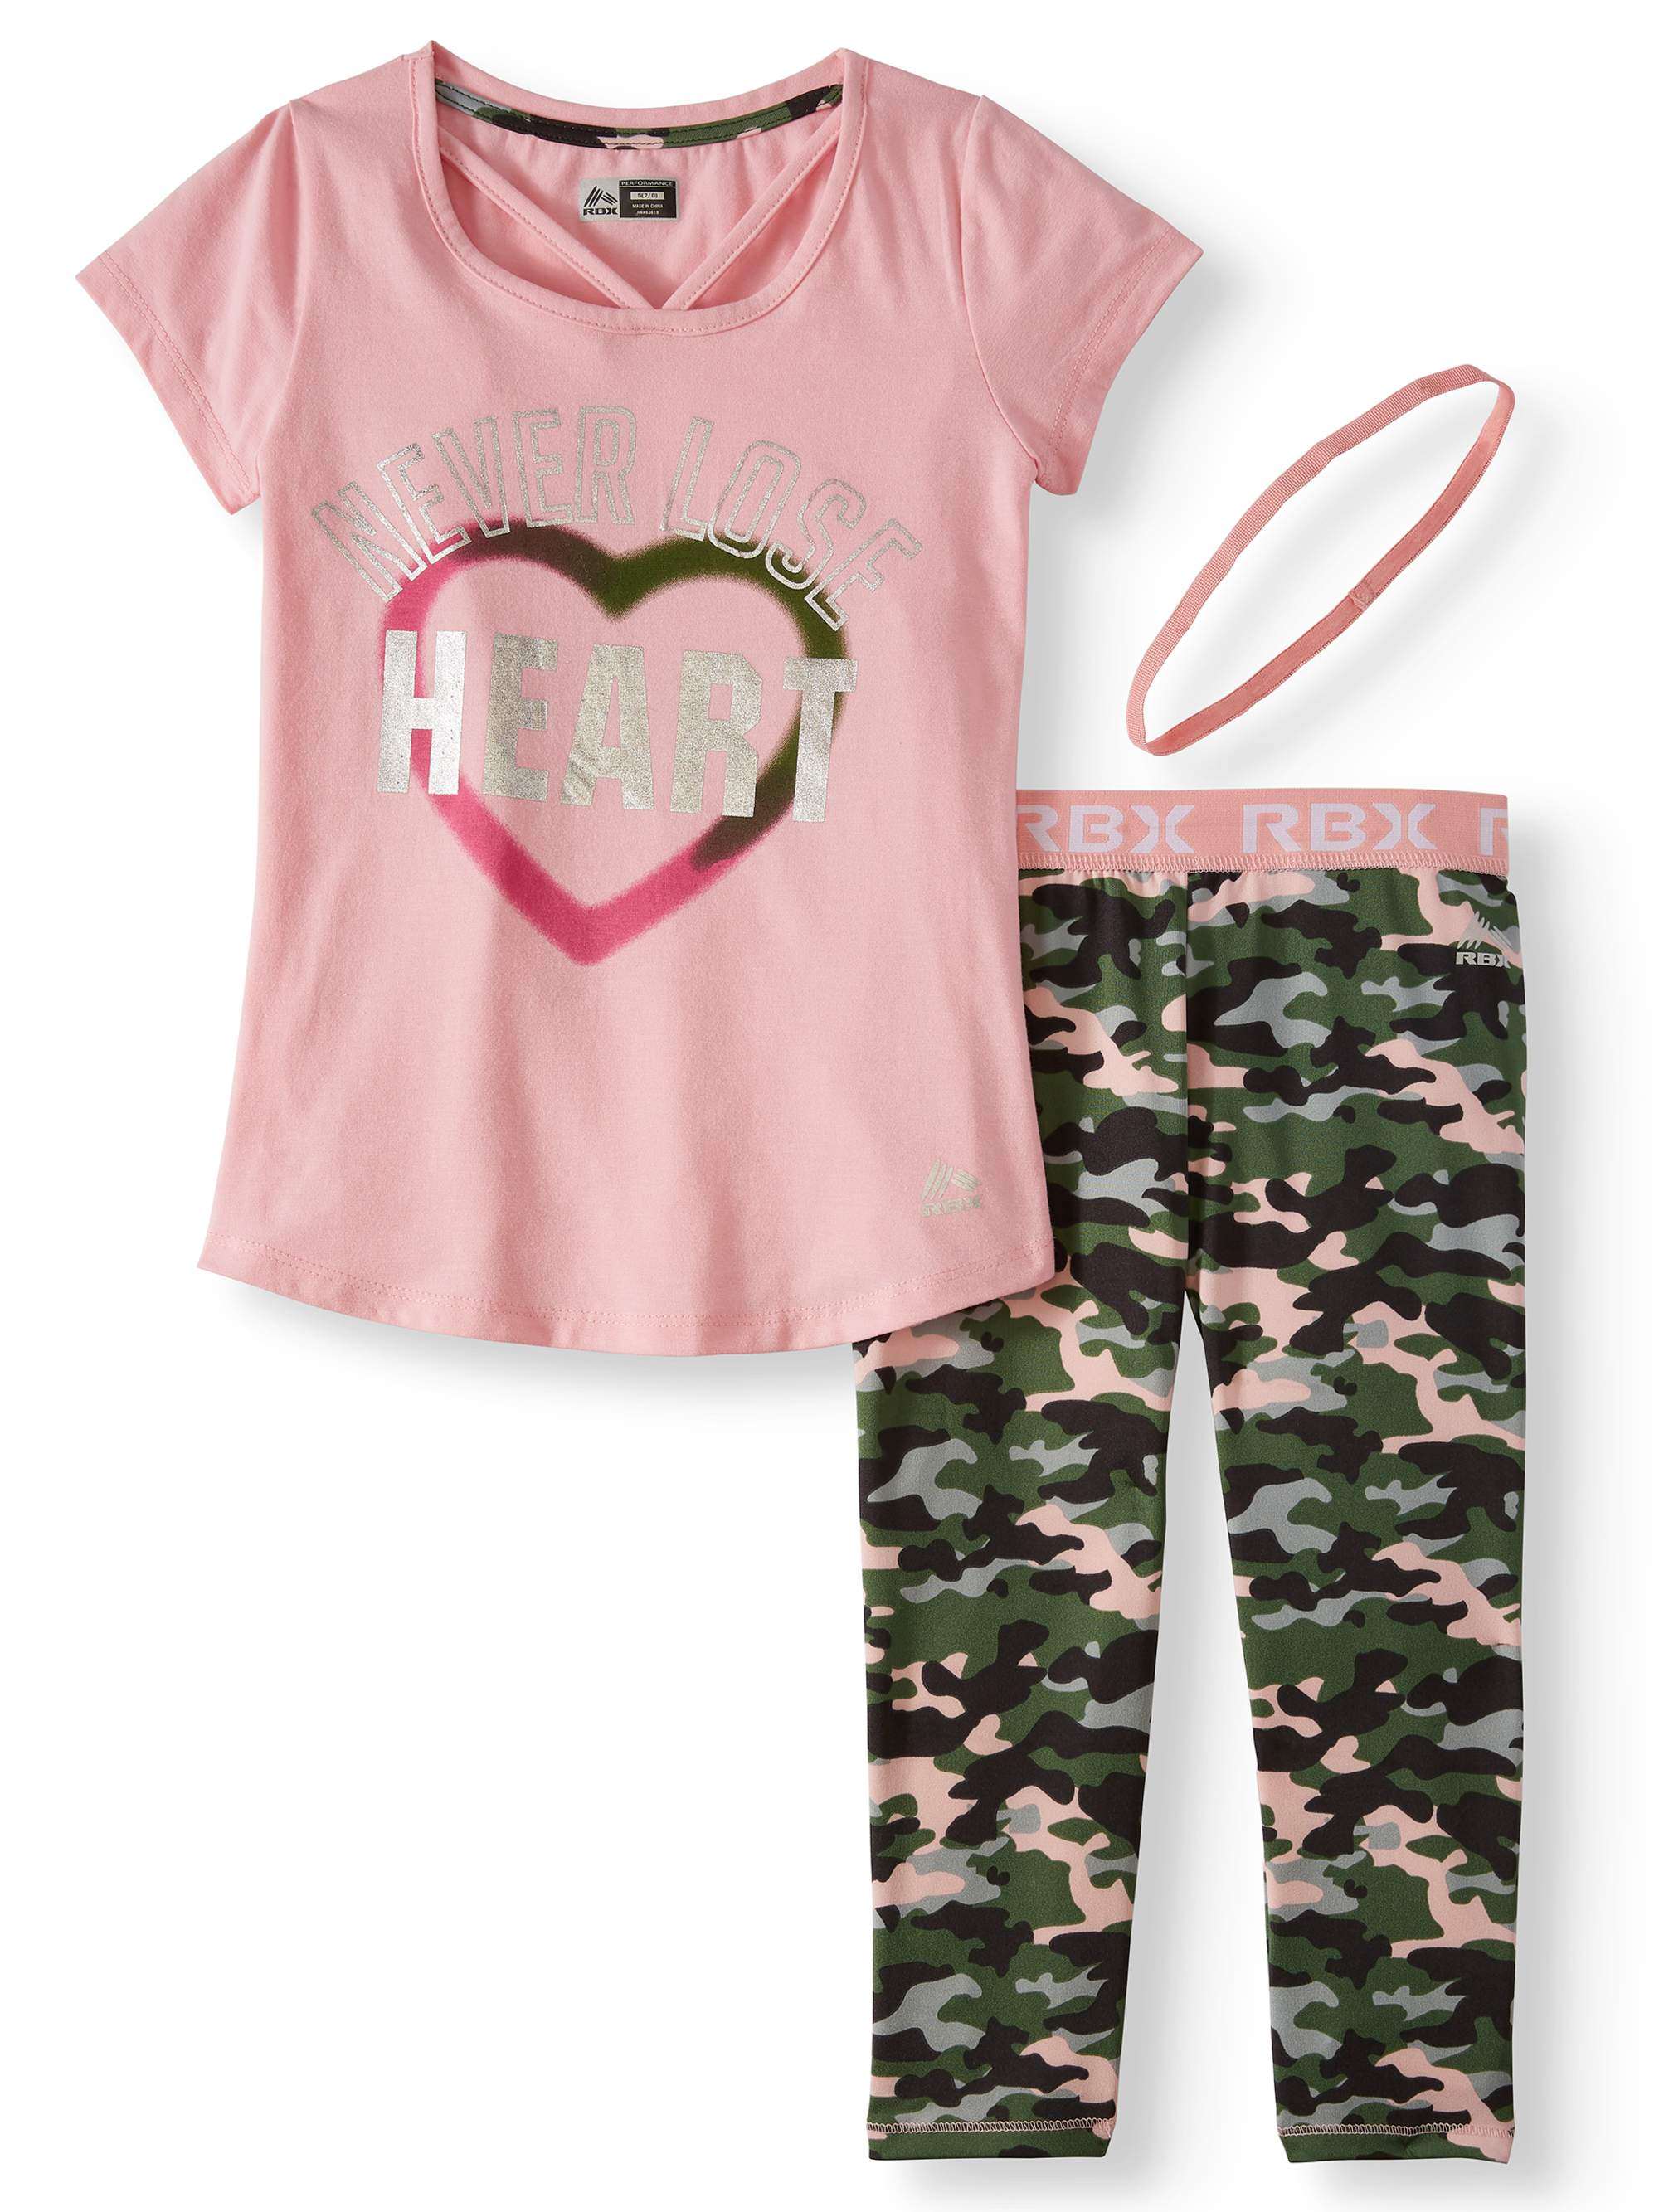 V-Neck Graphic Top and Camo Performance Legging, 2-Piece Active Set (Little Girls & Big Girls)